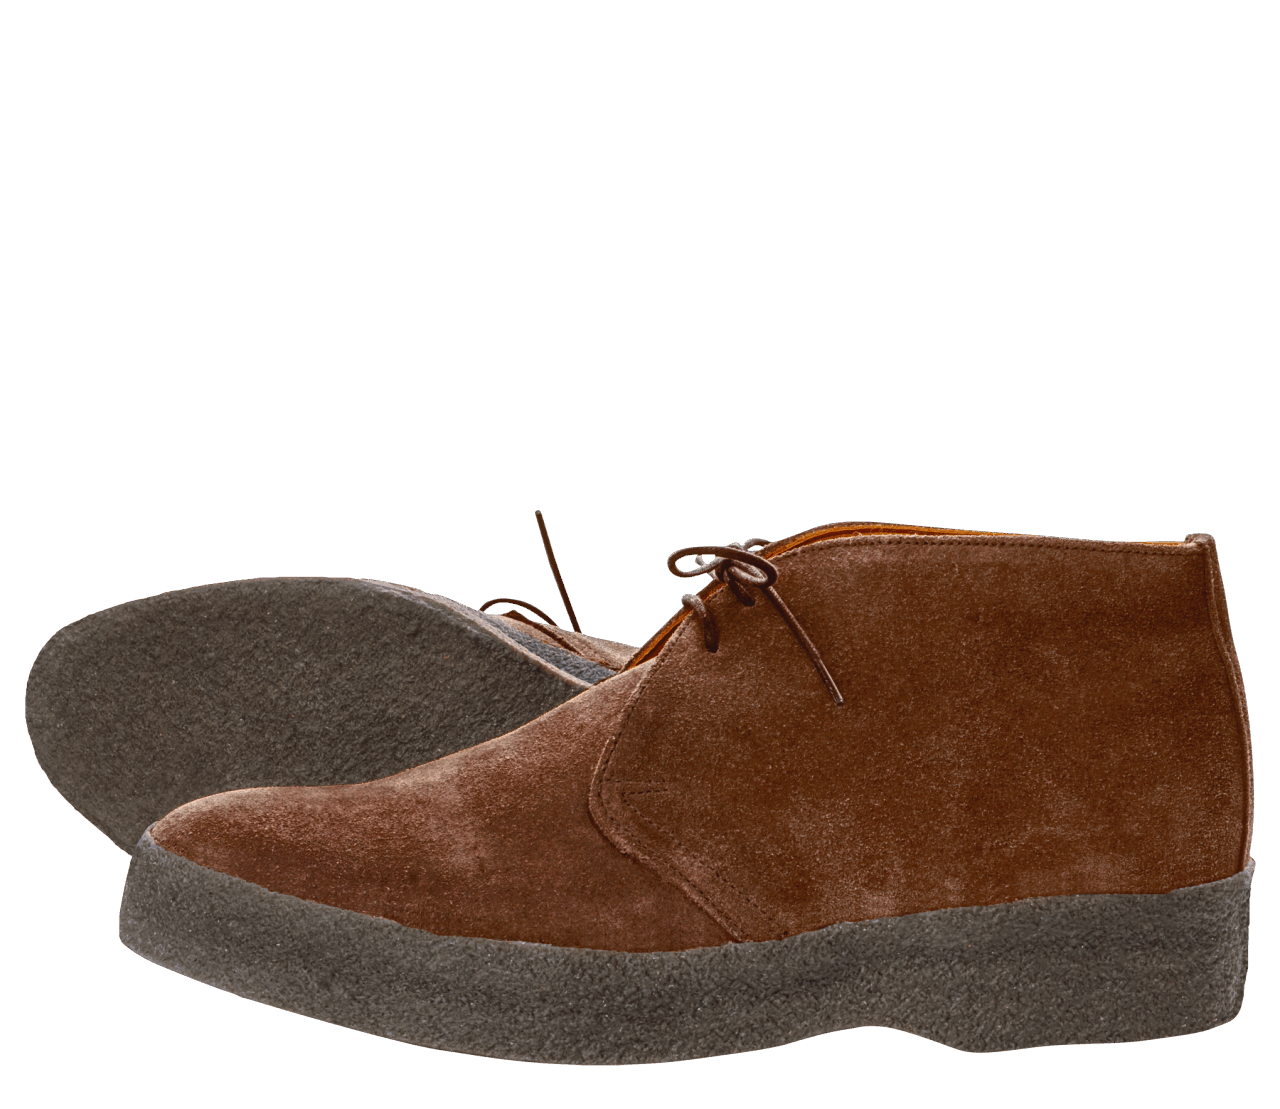 Sanders Chukka Boot - brown